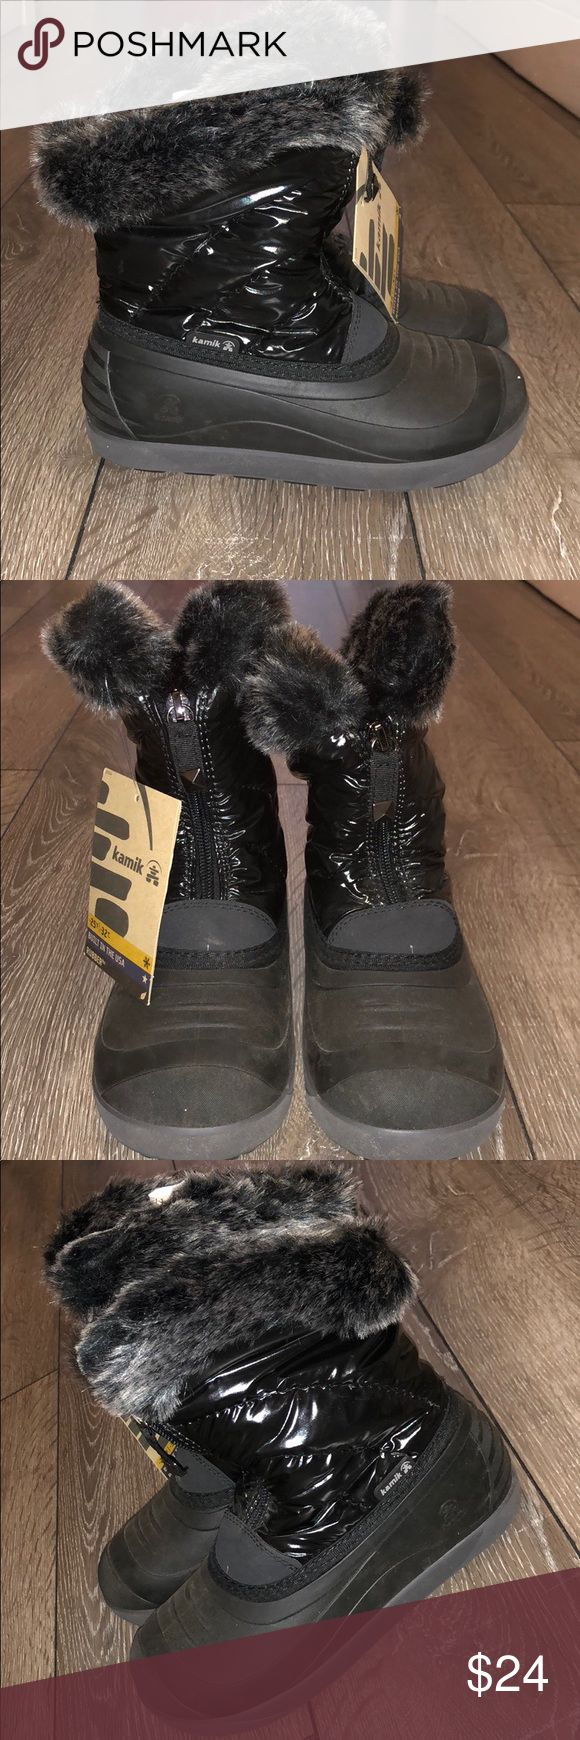 NWT Girls Black Kamik Boots These are new with tags & so cute. Winter boots that are lined with fur and comfy too. They are all black with a couple different types of material - rubber, faux fur and the material surrounding the zipper. Size 2 in girls!  These come from a smoke and pet free home. There is some dust on the Boots, but no signs or wear or damage at all. Kamik Shoes Rain & Snow Boots